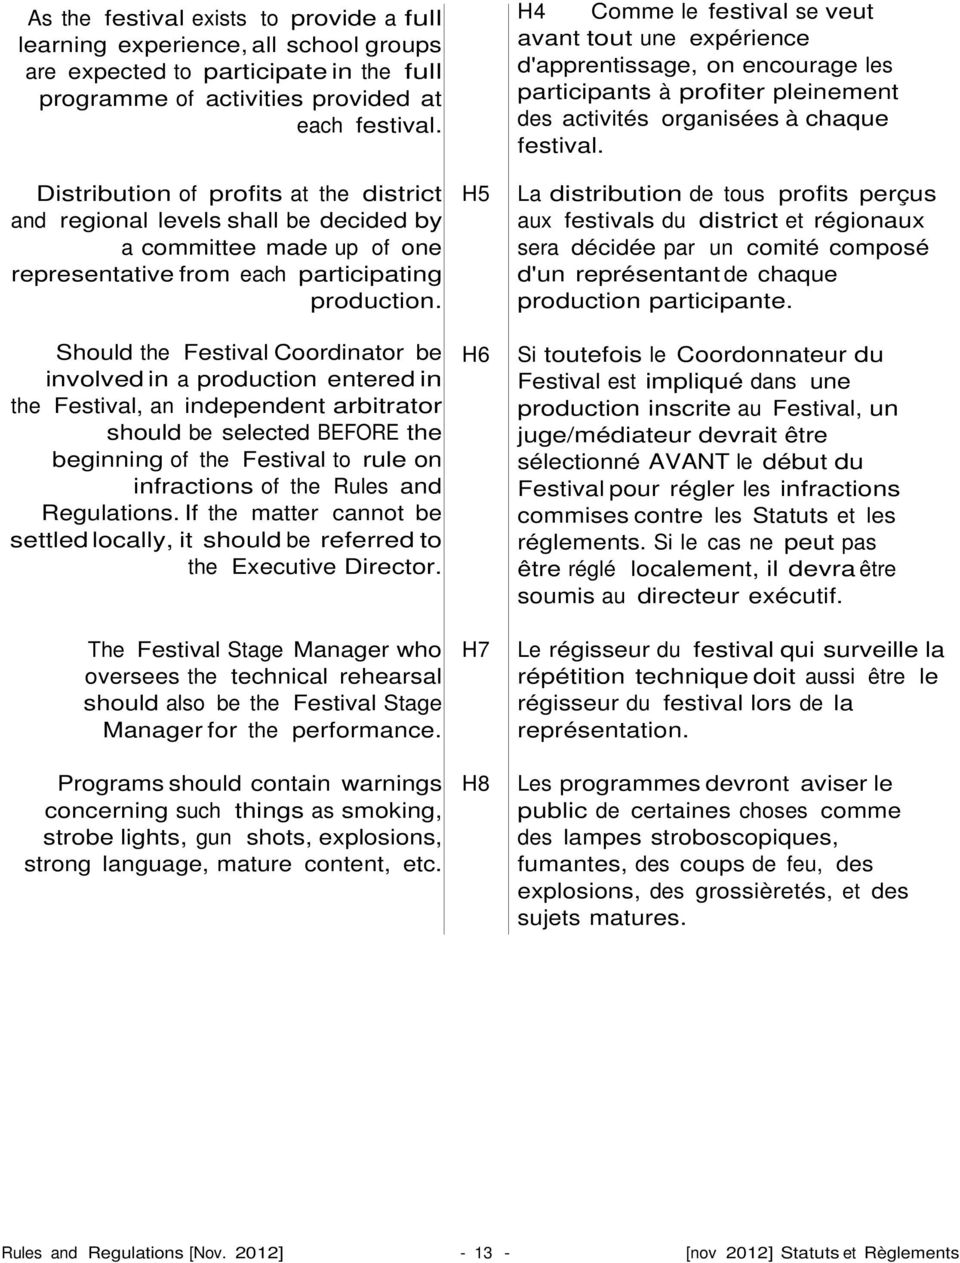 Should the Festival Coordinator be involved in a production entered in the Festival, an independent arbitrator should be selected BEFORE the beginning of the Festival to rule on infractions of the